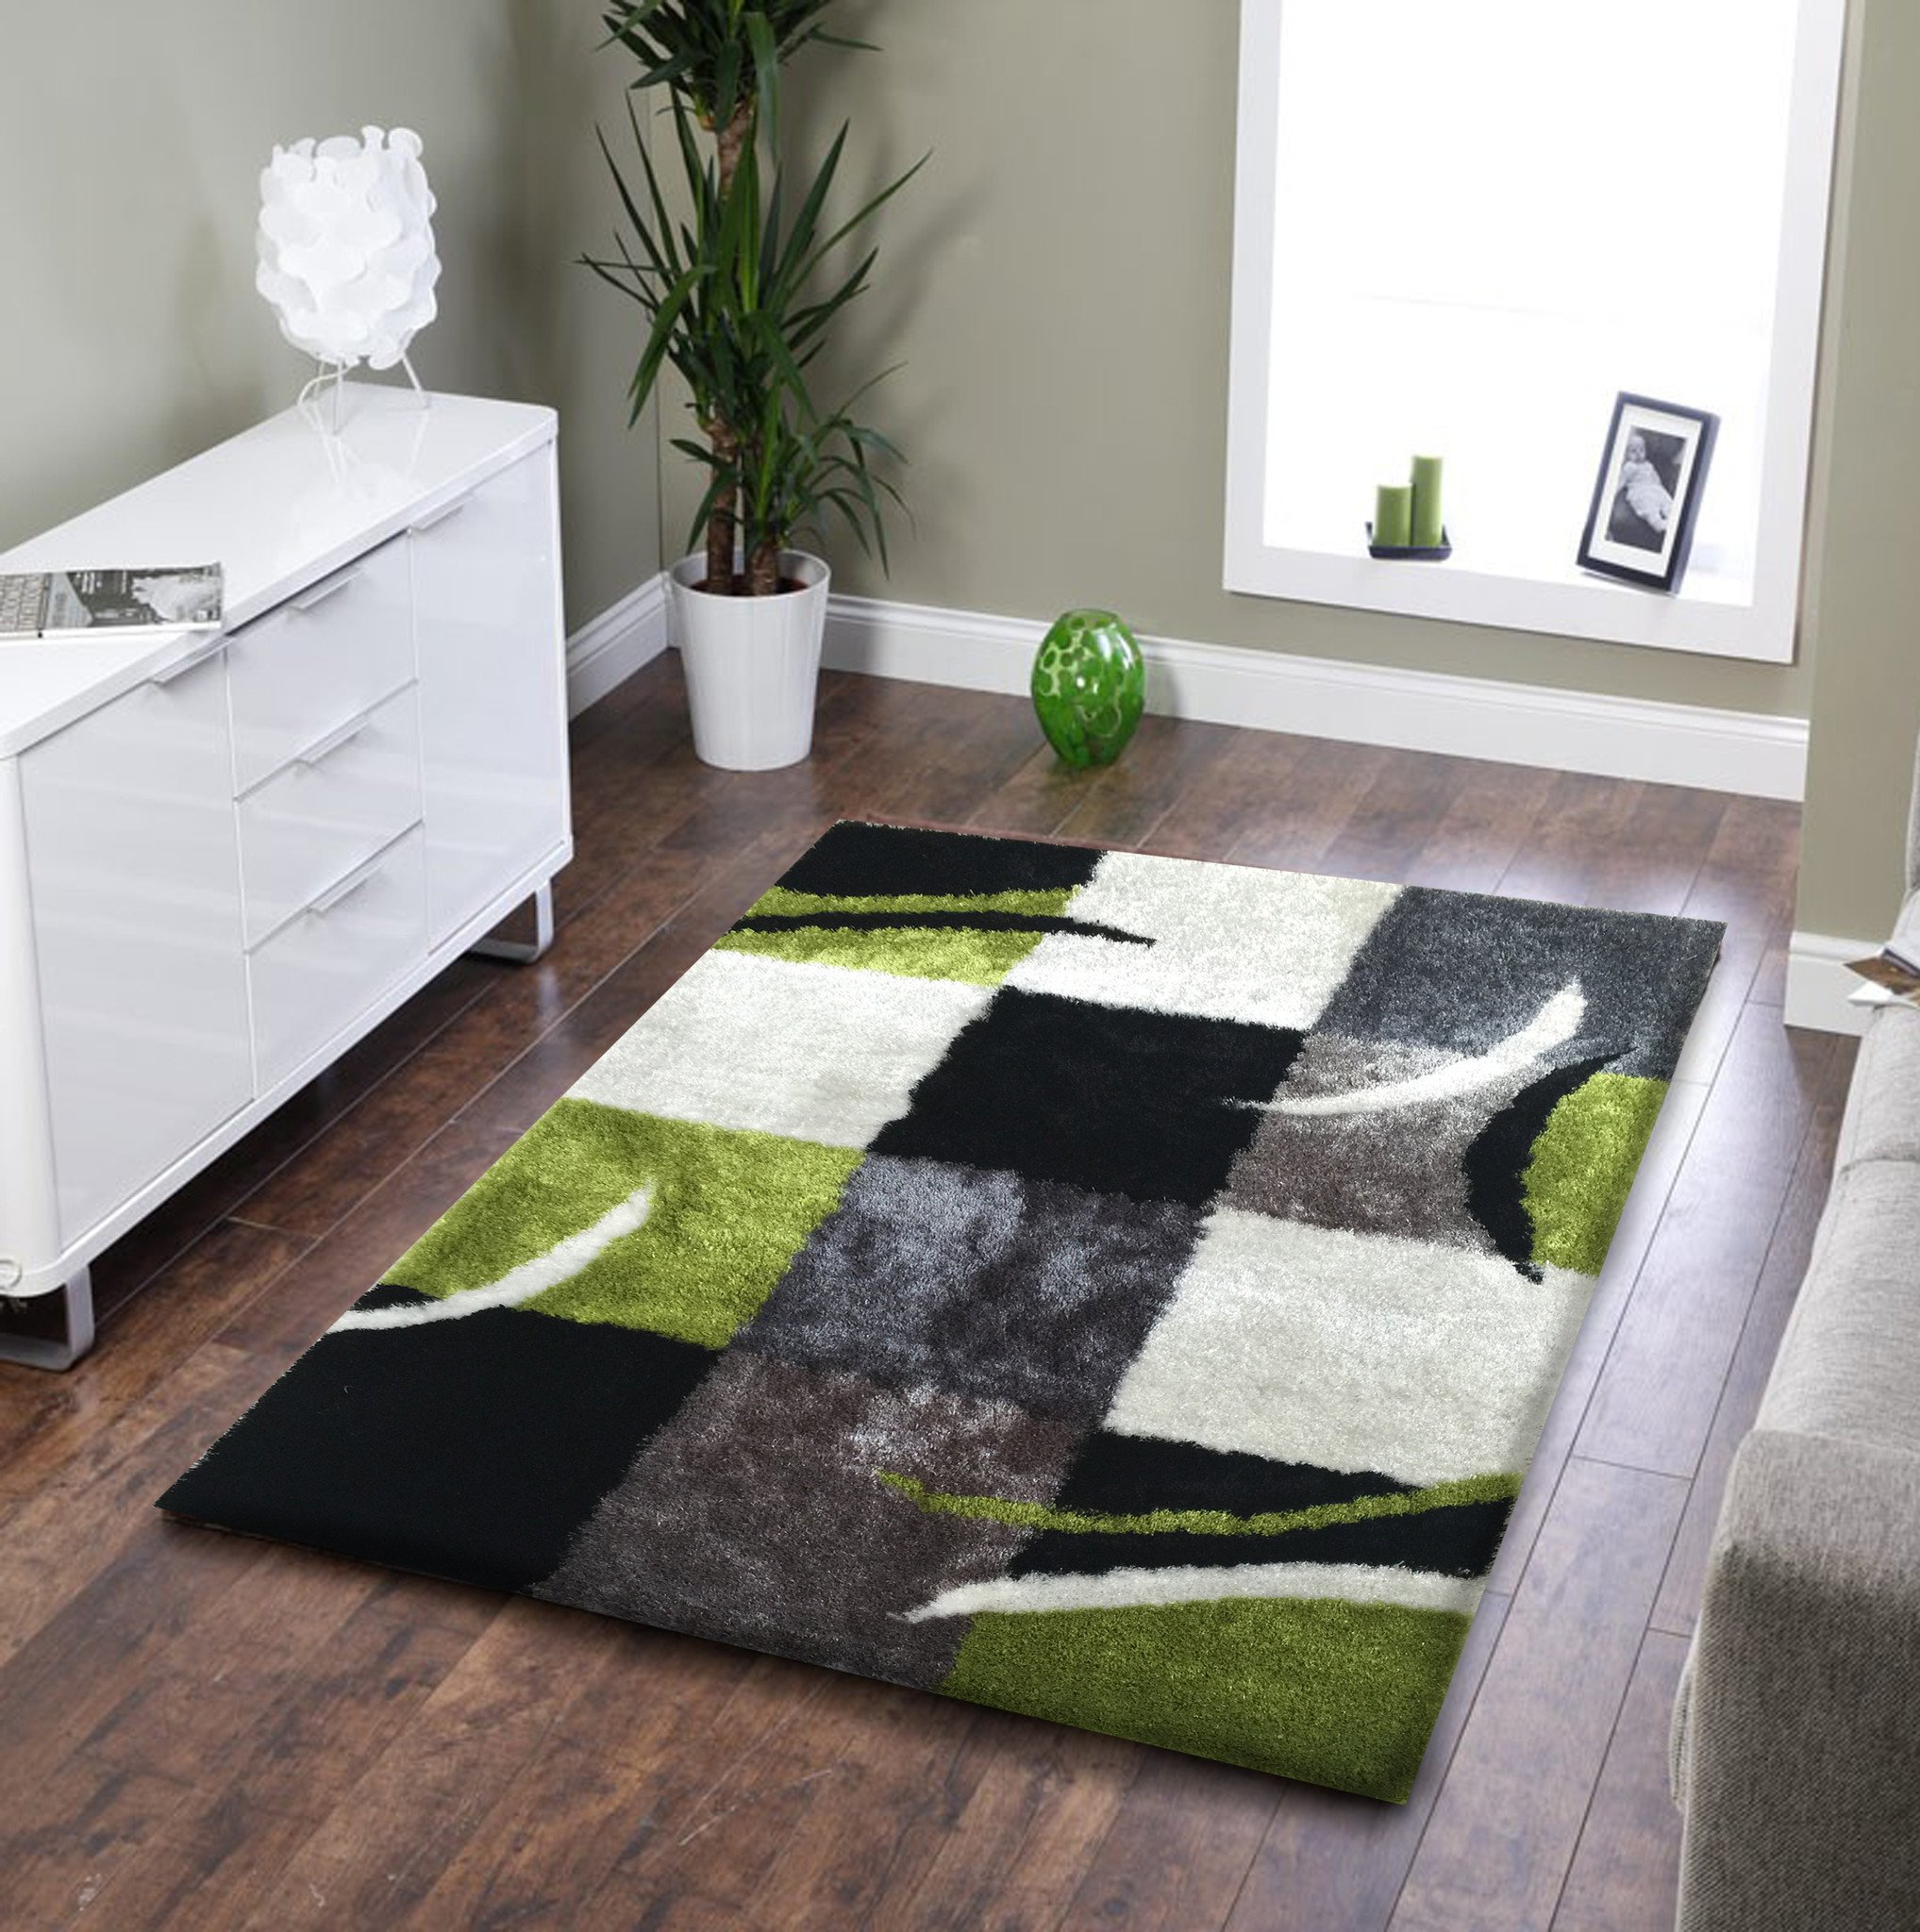 Green area rugs in the house: